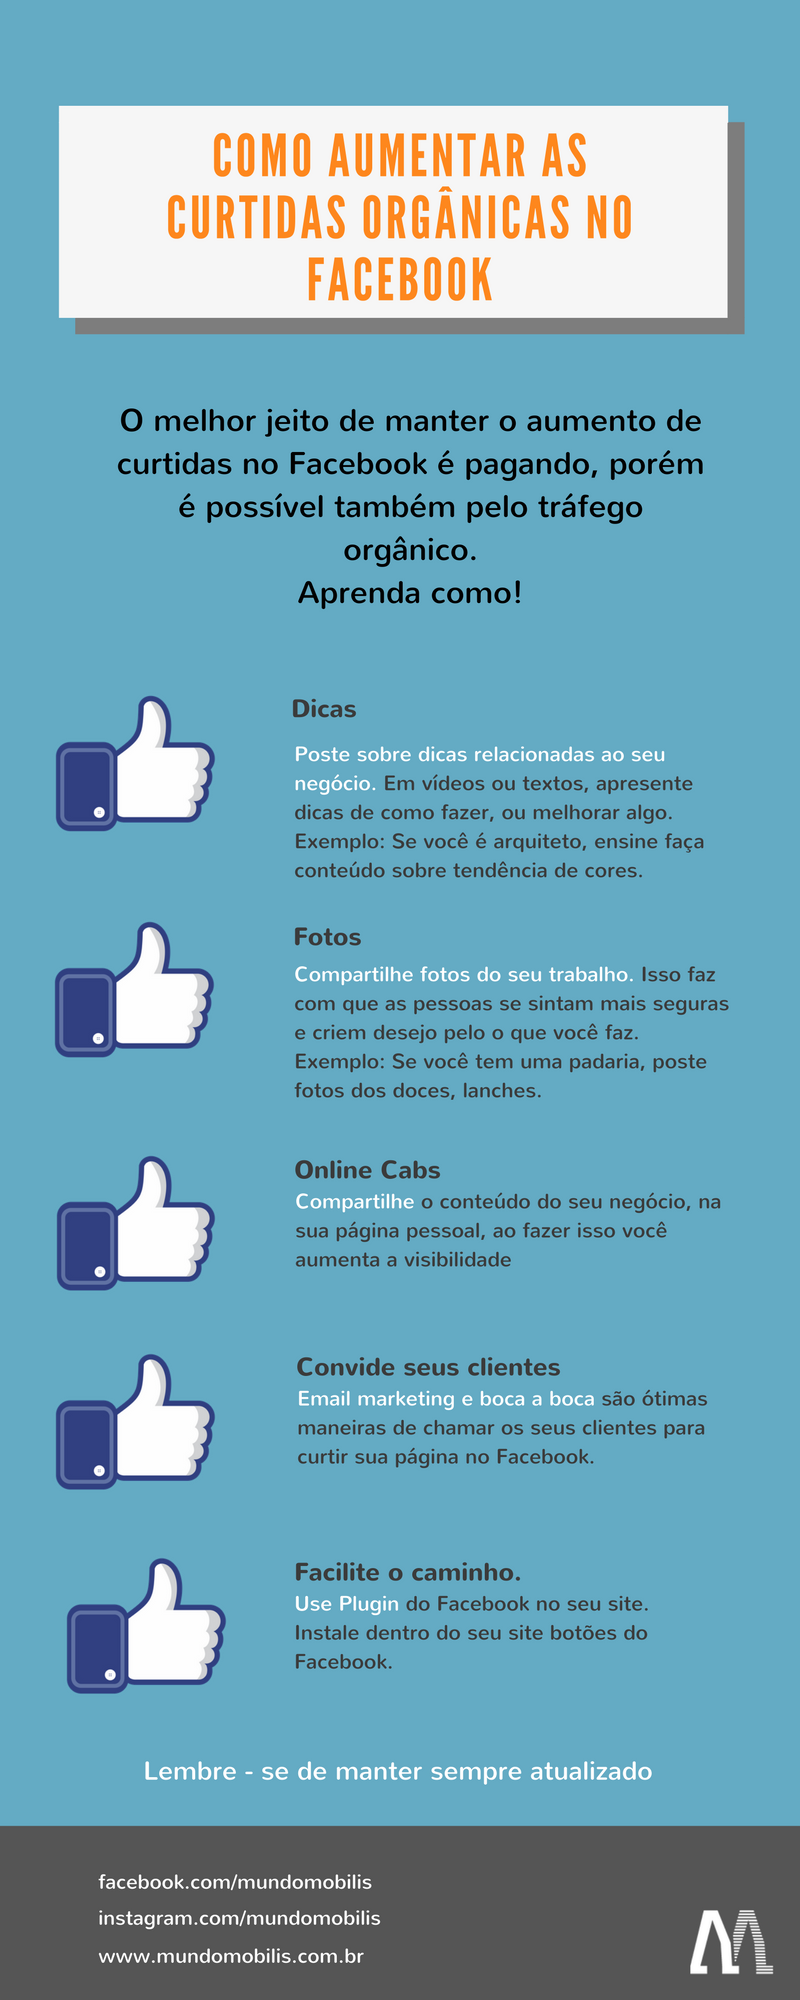 como-aumentar-as-curtidas-orga%cc%82nicas-no-facebook